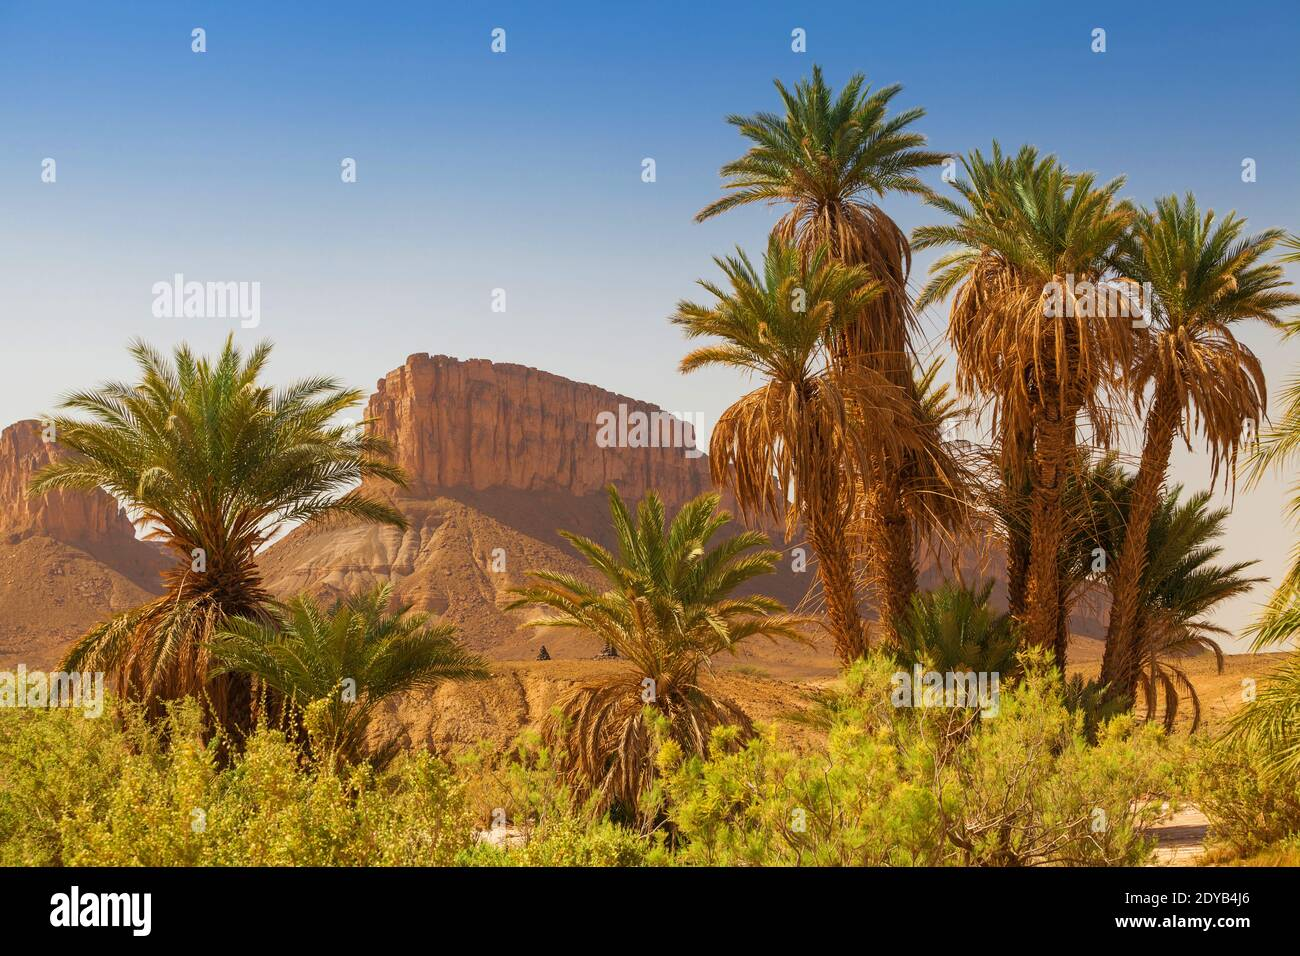 Mountains In The Sahara Desert As Seen From An Oasis With Palm Trees. Morocco Africa Stock Photo